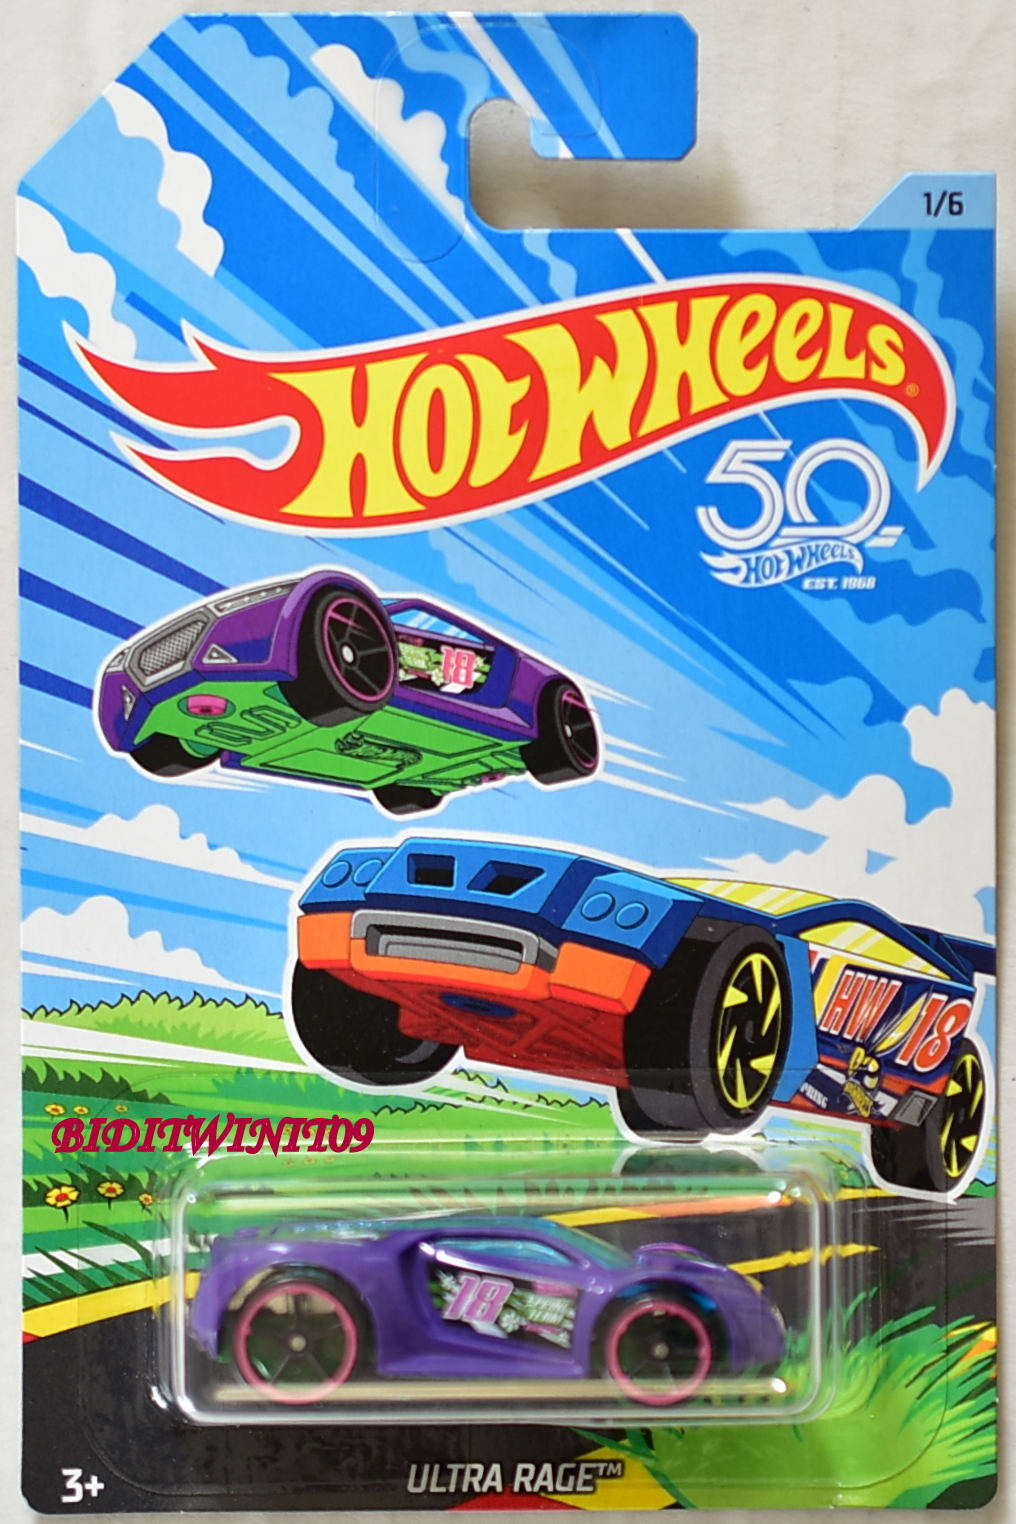 HOT WHEELS 2018 50TH ANNIVERSARY ULTRA RACE #1/6